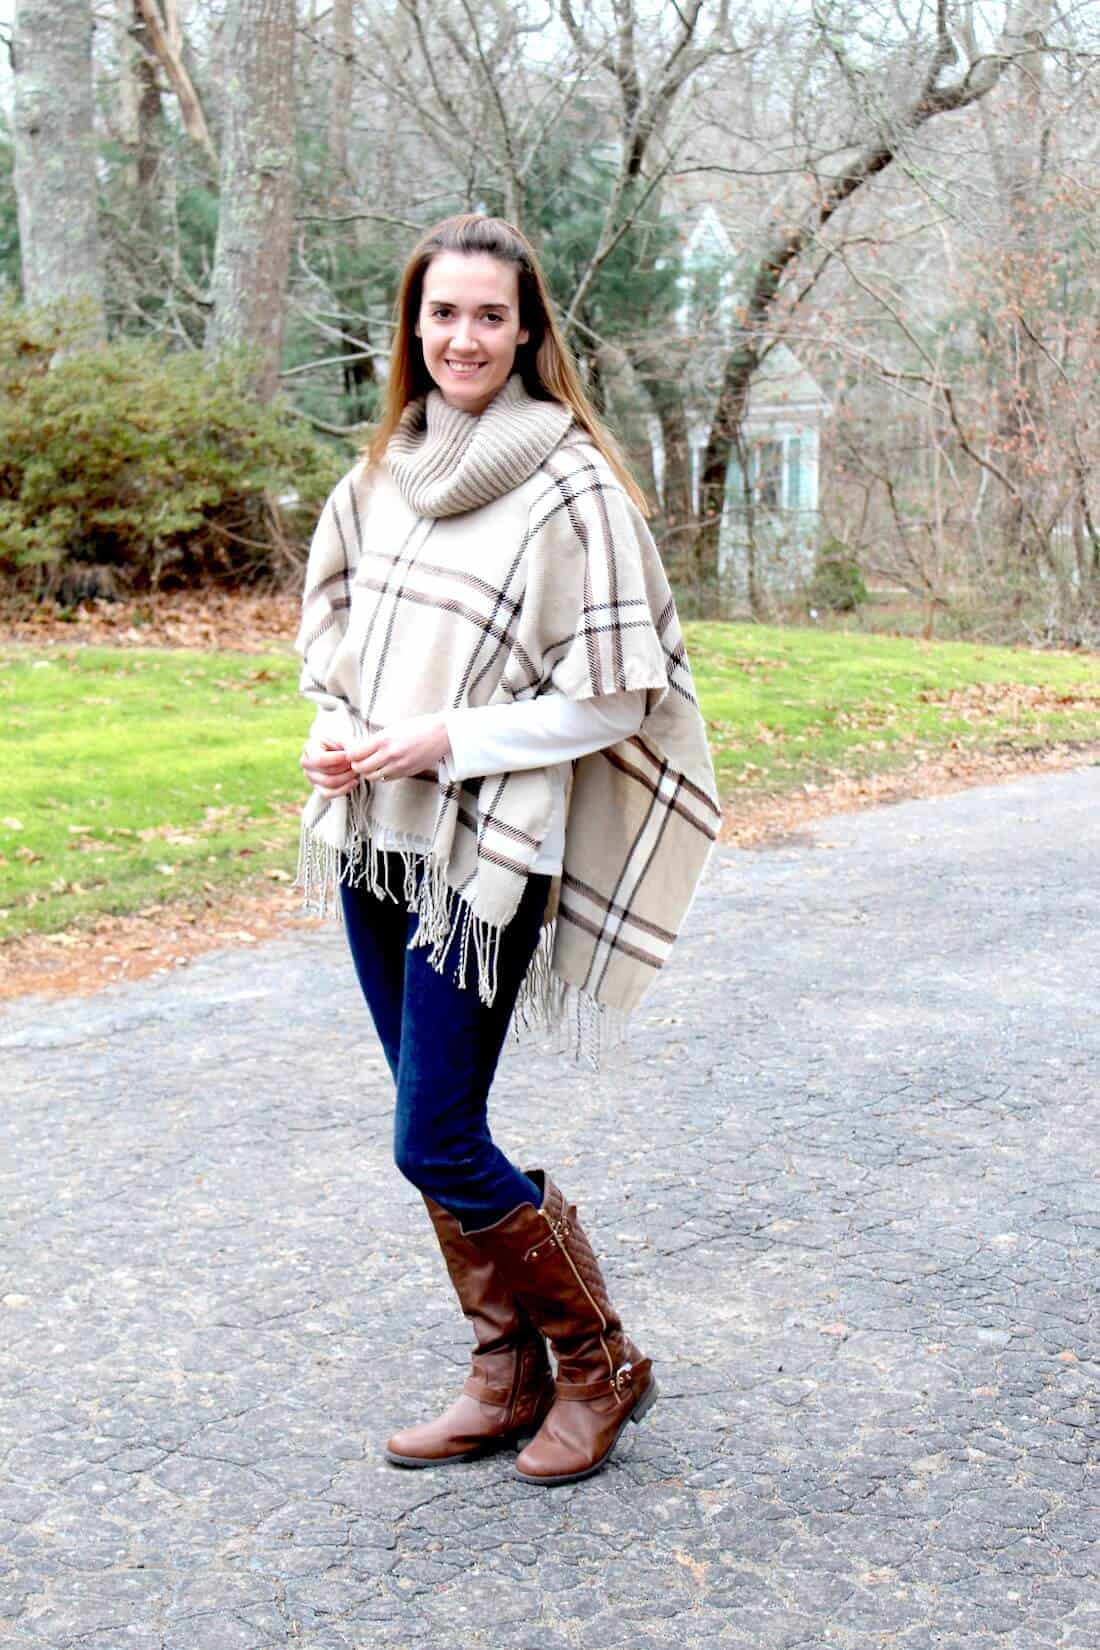 Ponchos are the easiest way to find some early pregnancy style, they make for great first trimester outfits!